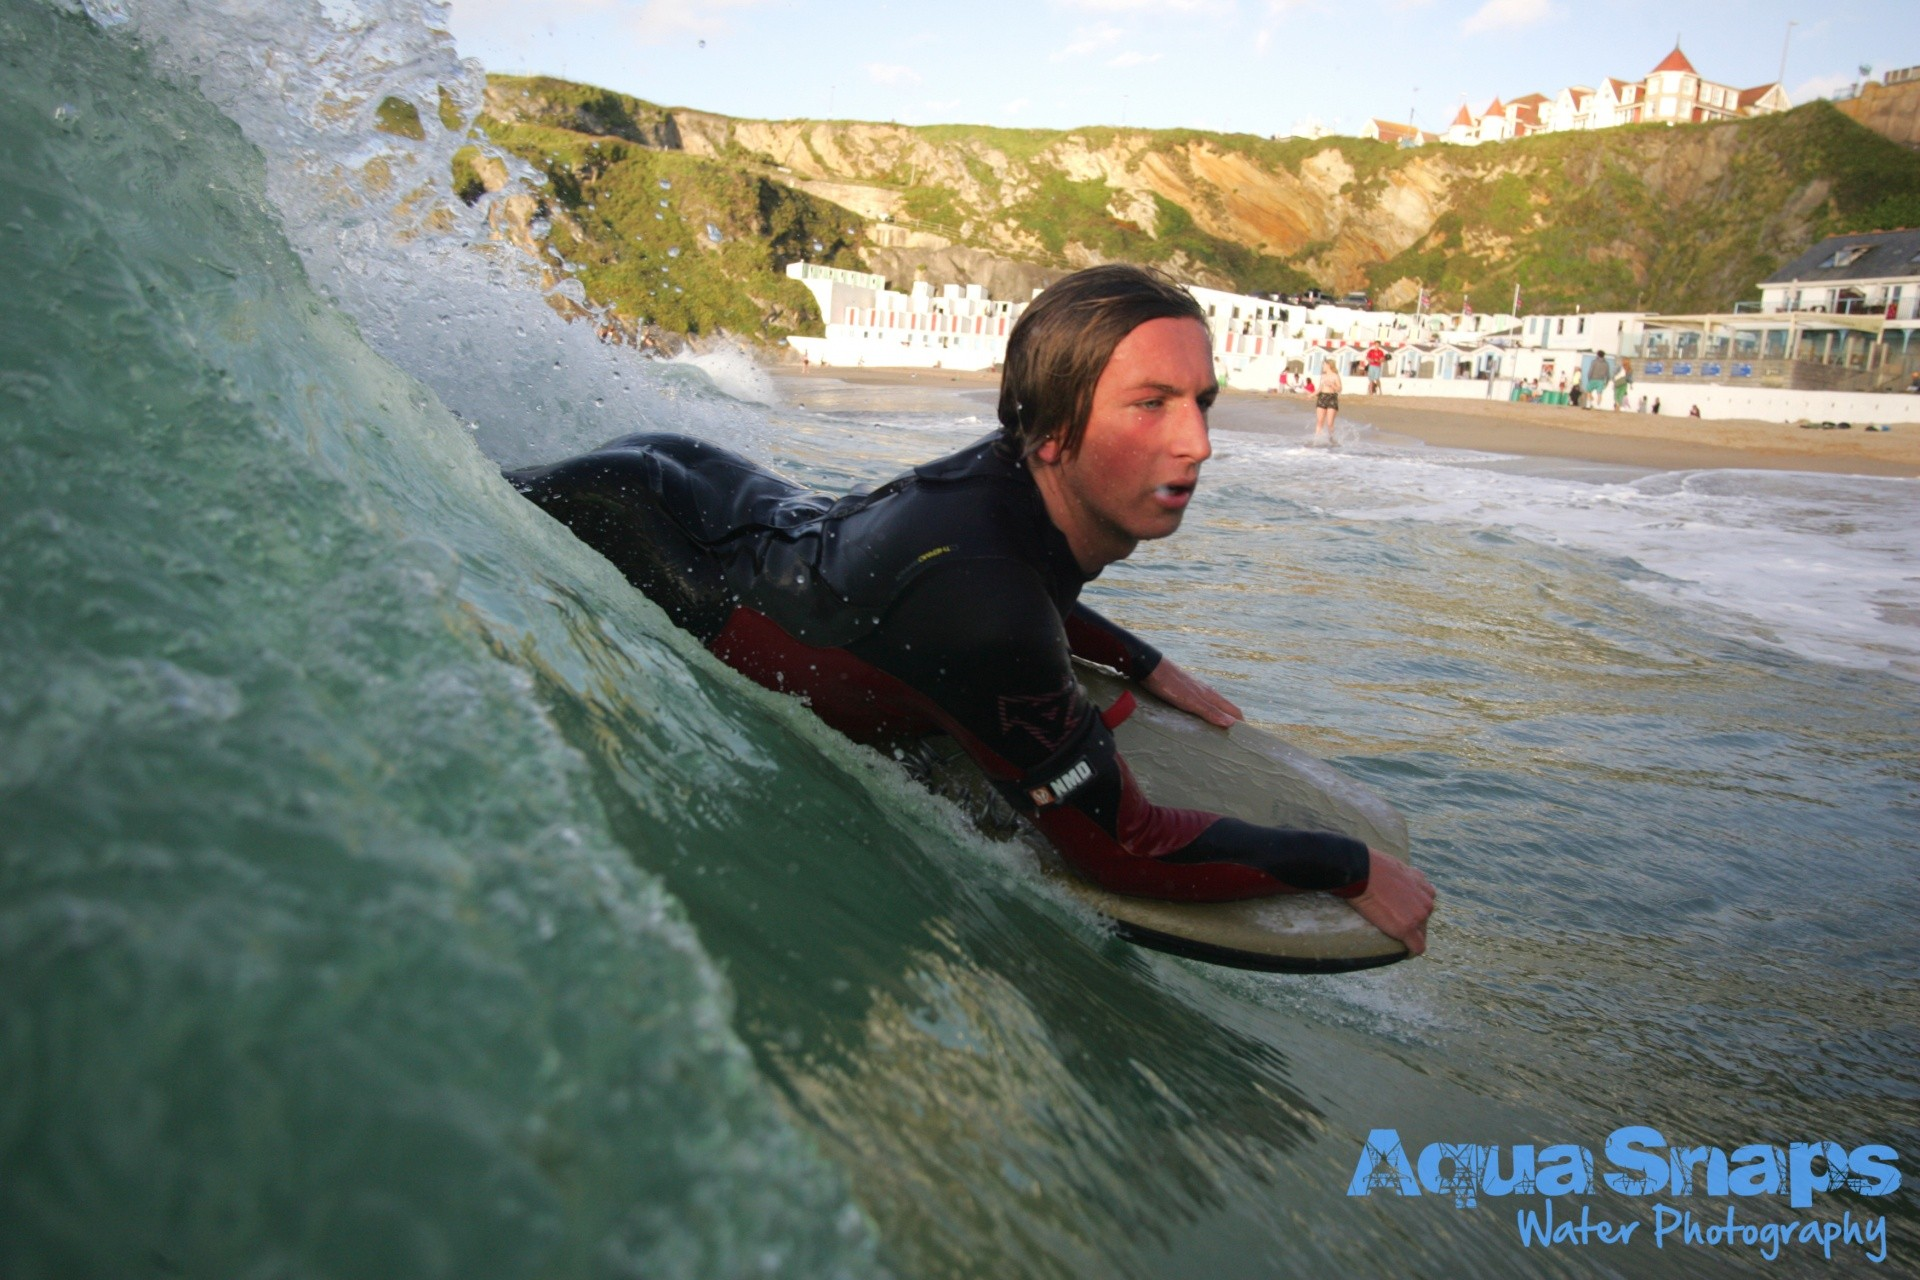 Aqua Snaps's photo of Newquay - Tolcarne Wedge